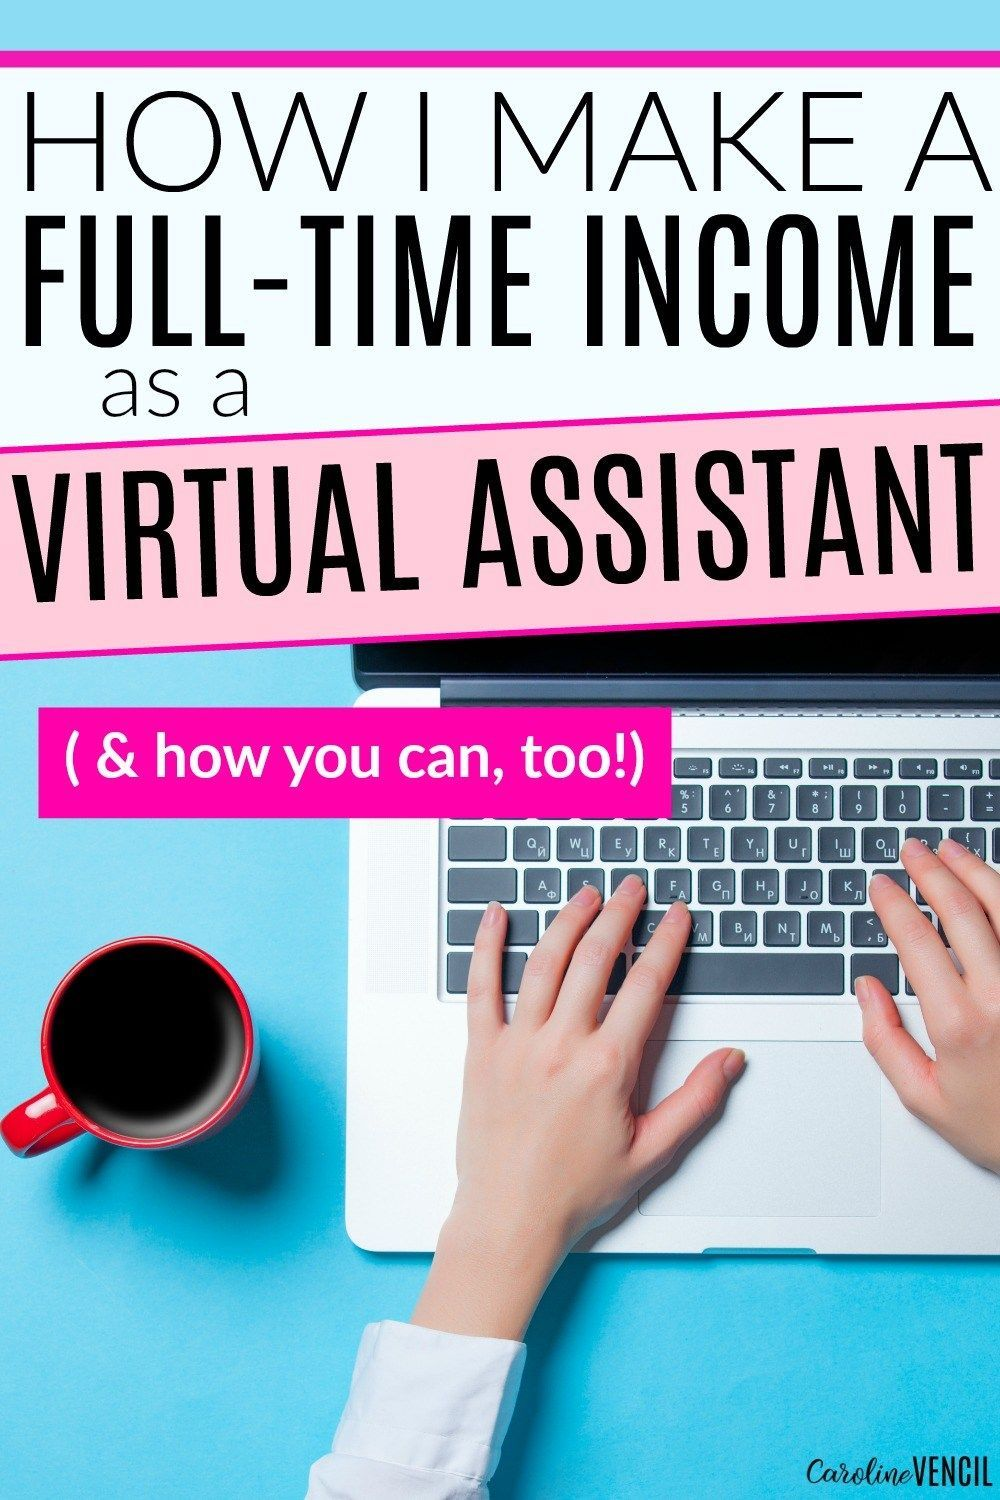 How to a Virtual Assistant and Make a FullTime